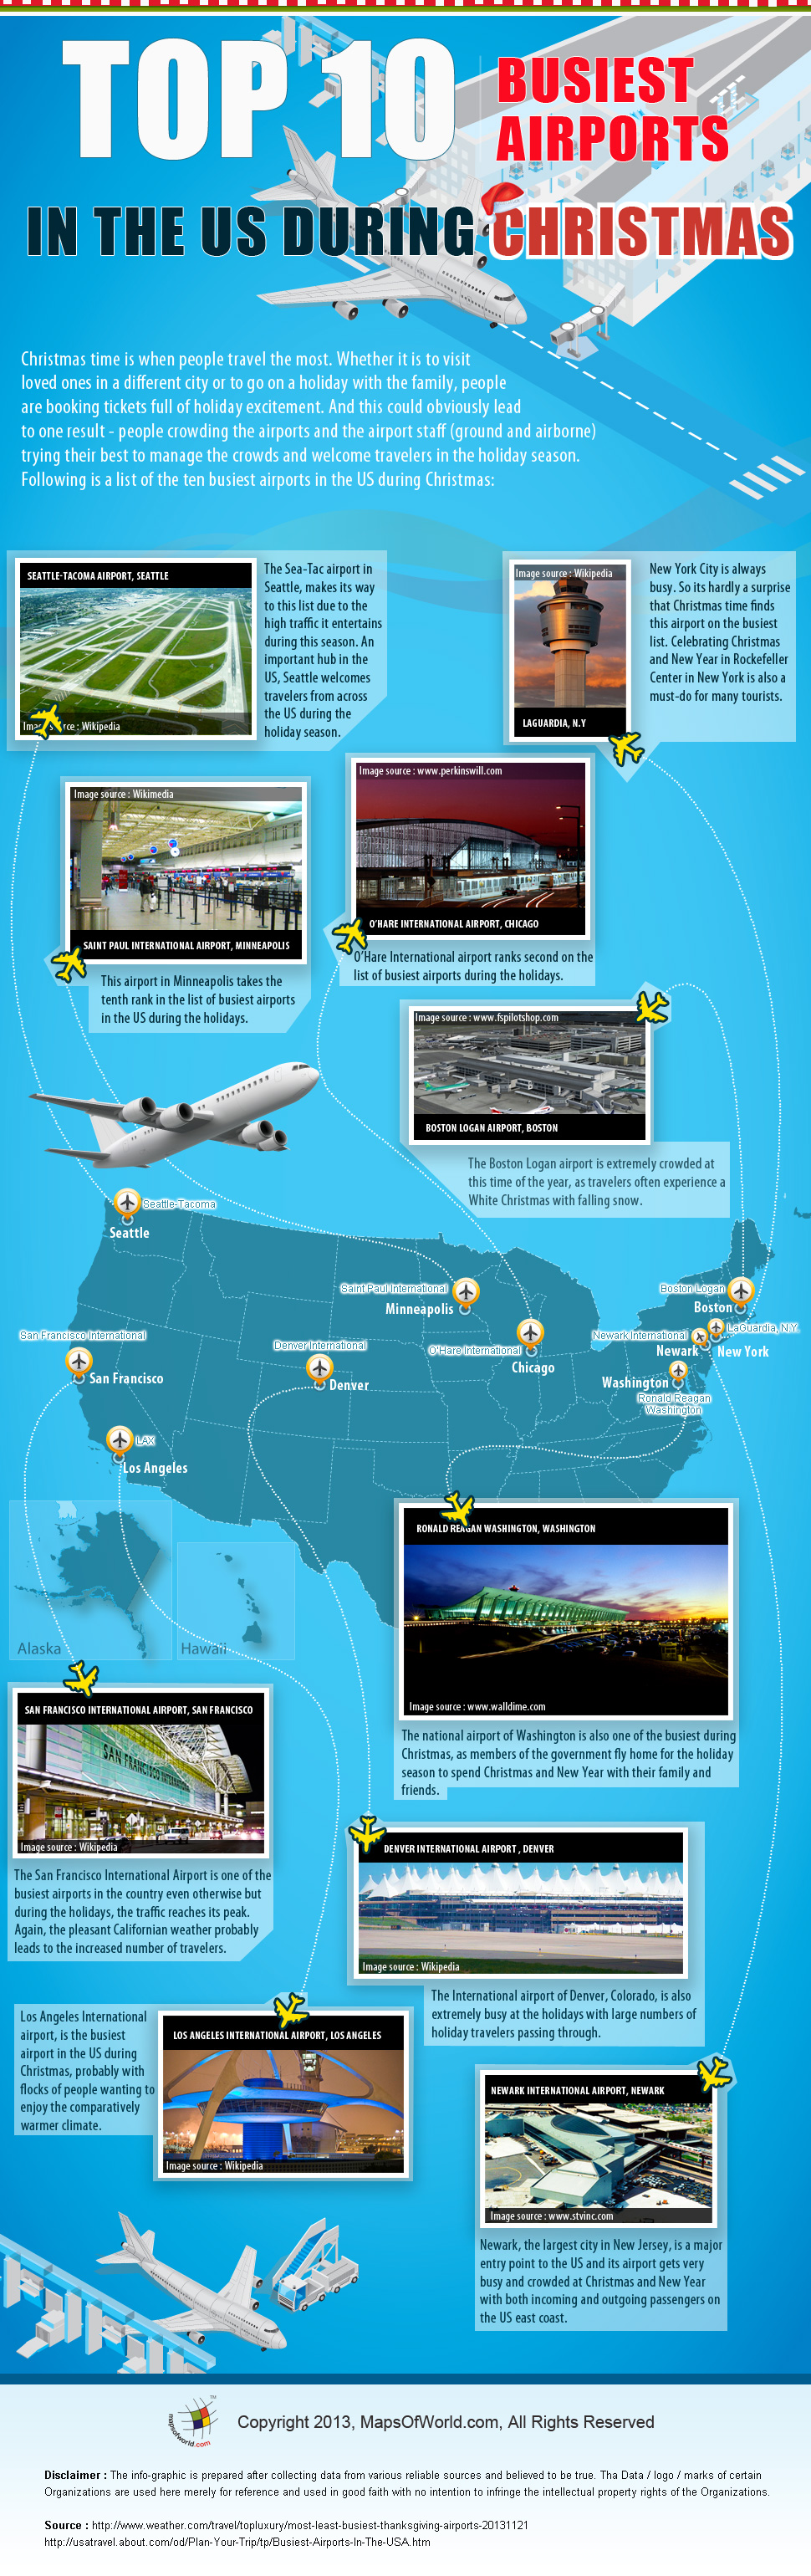 Infographic on the US Busiest Airports During Christmas